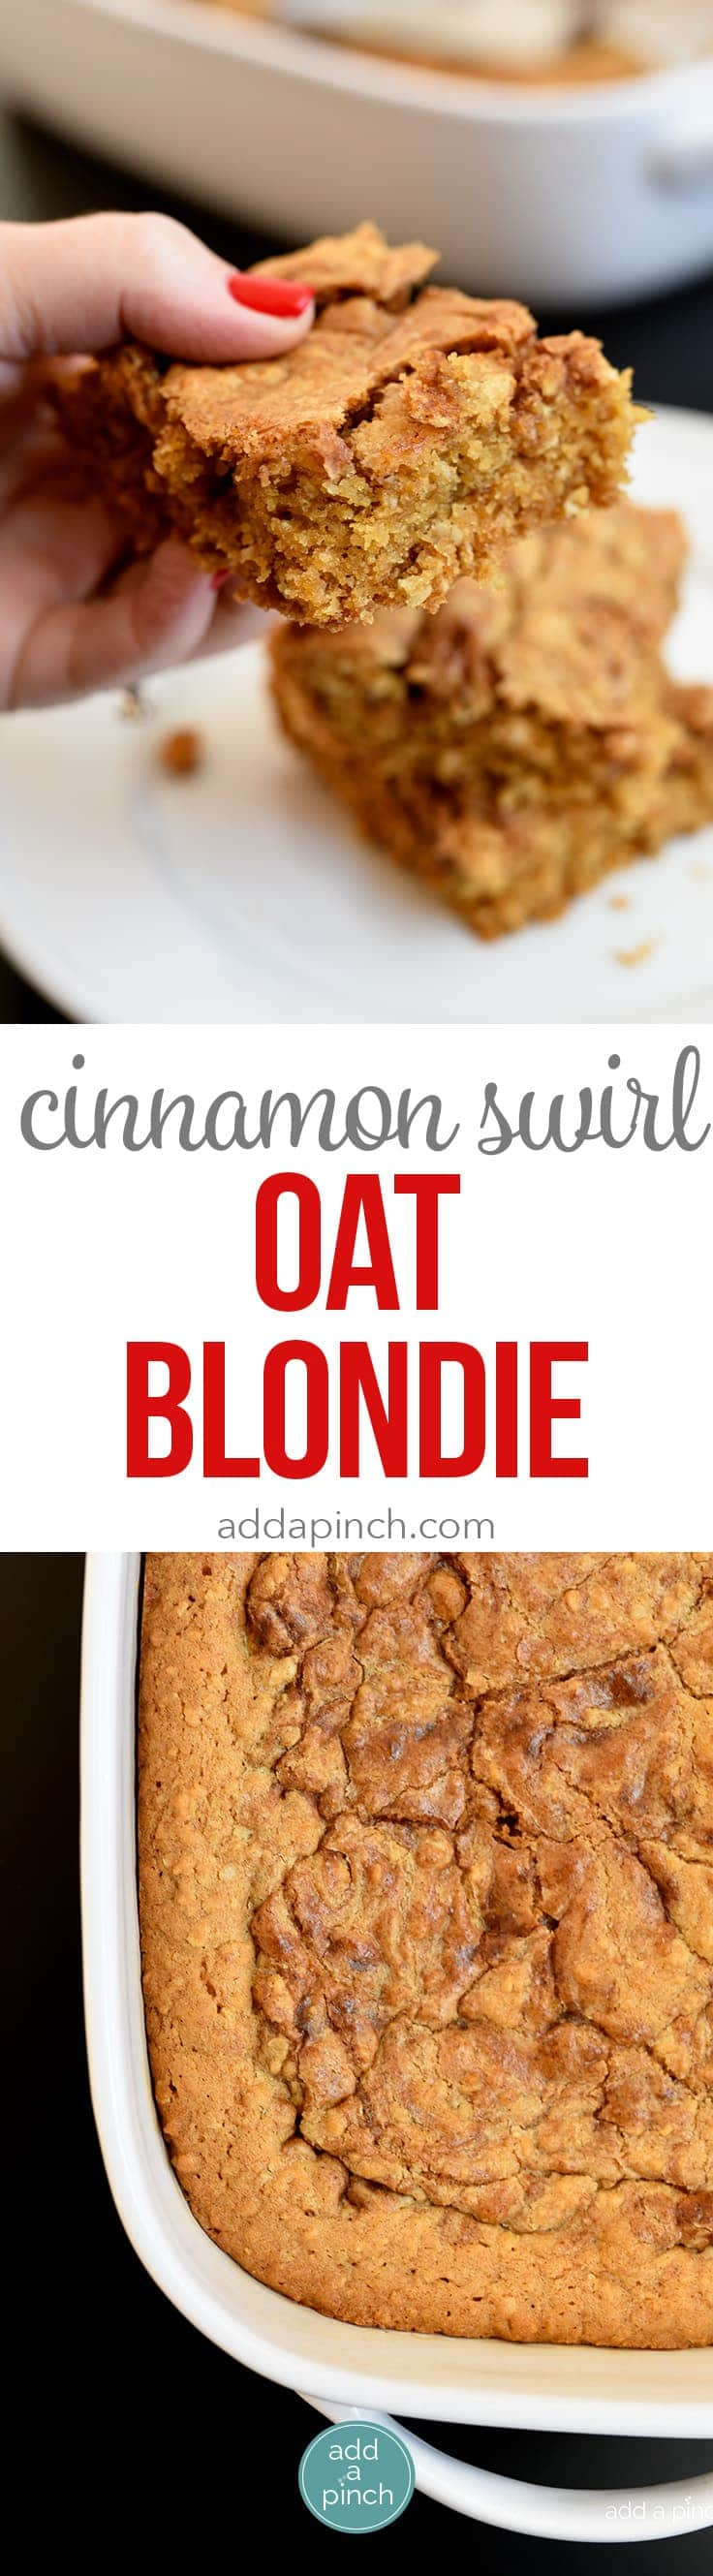 Cinnamon Swirl Oat Blondies Recipe - This Cinnamon Swirl Oat Blondie recipe is a delicious blondie made even better with the addition of oats and a fabulous cinnamon swirl throughout! // addapinch.com